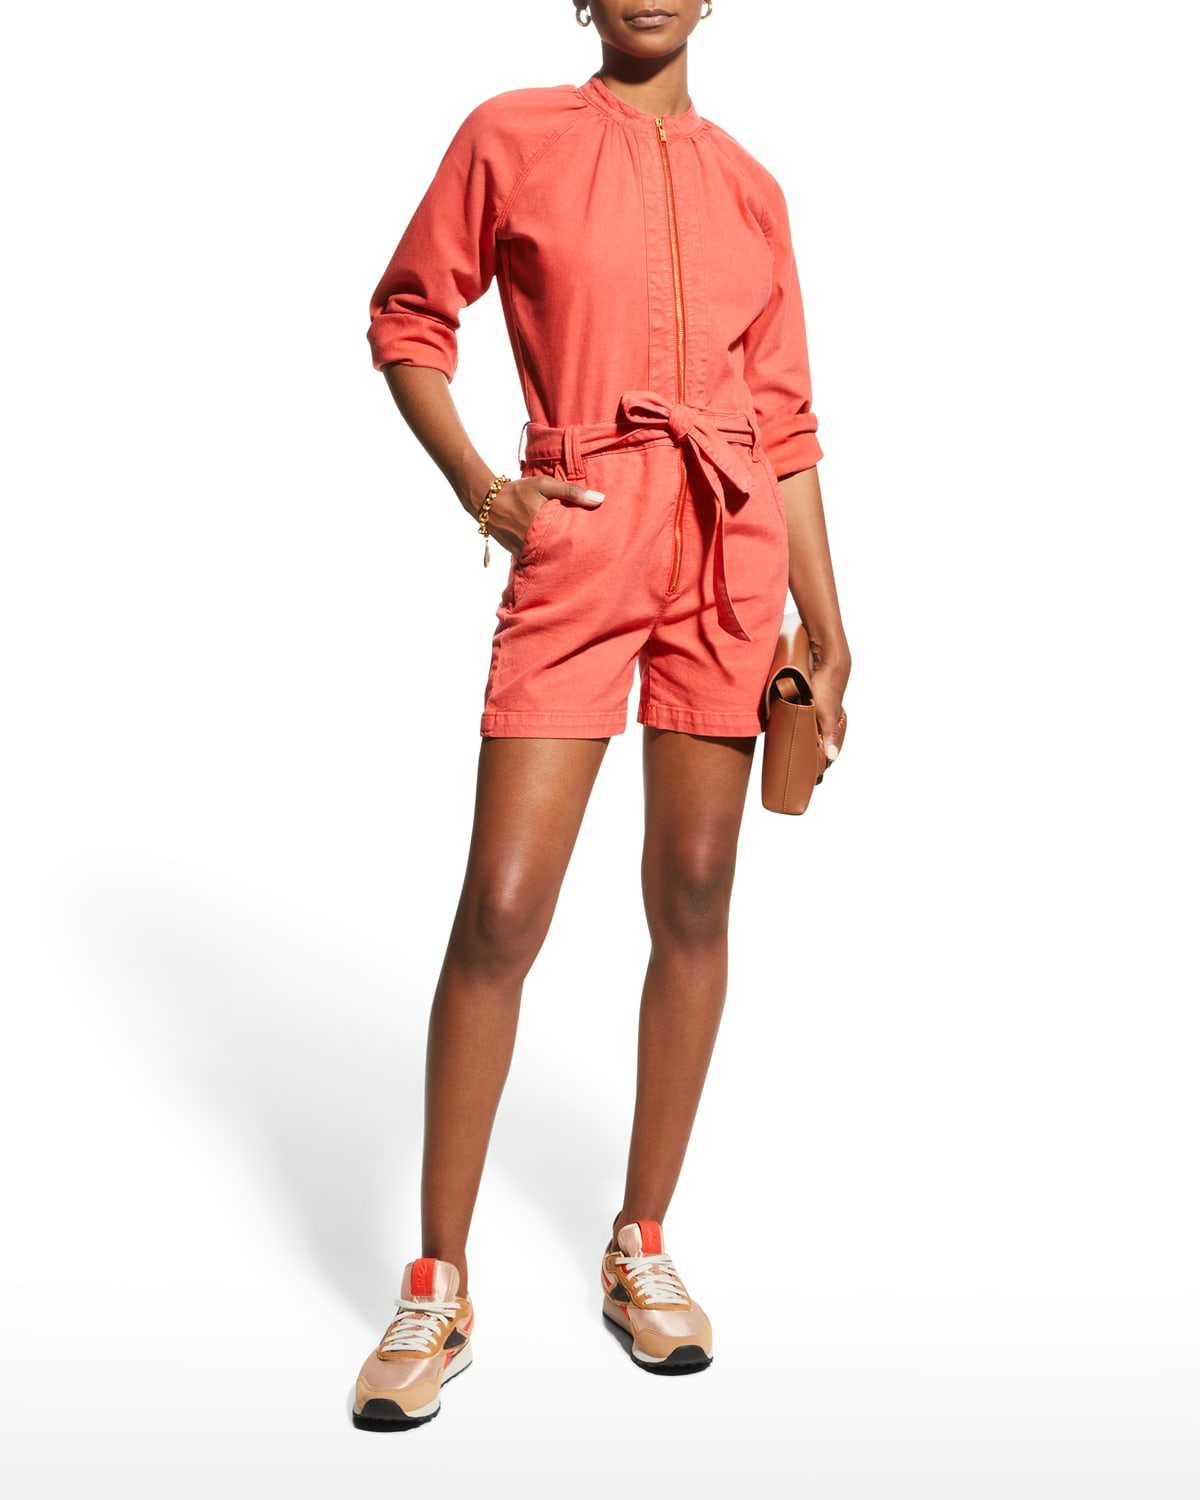 The Gatherer Zip-Front Romper